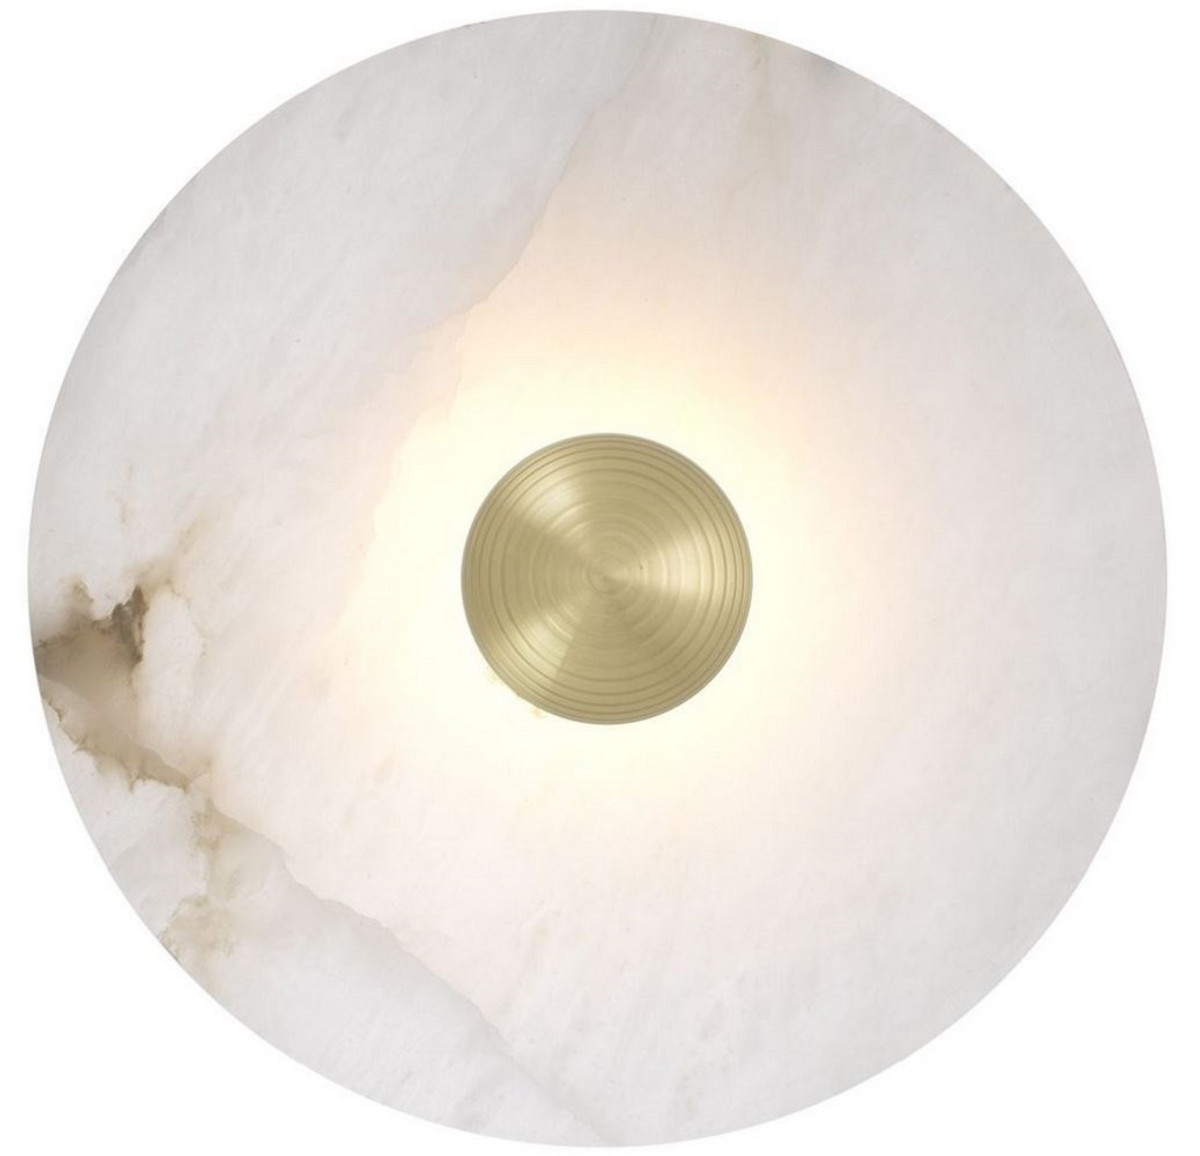 Casa Padrino Luxus Led Wandleuchte Alabaster Hell